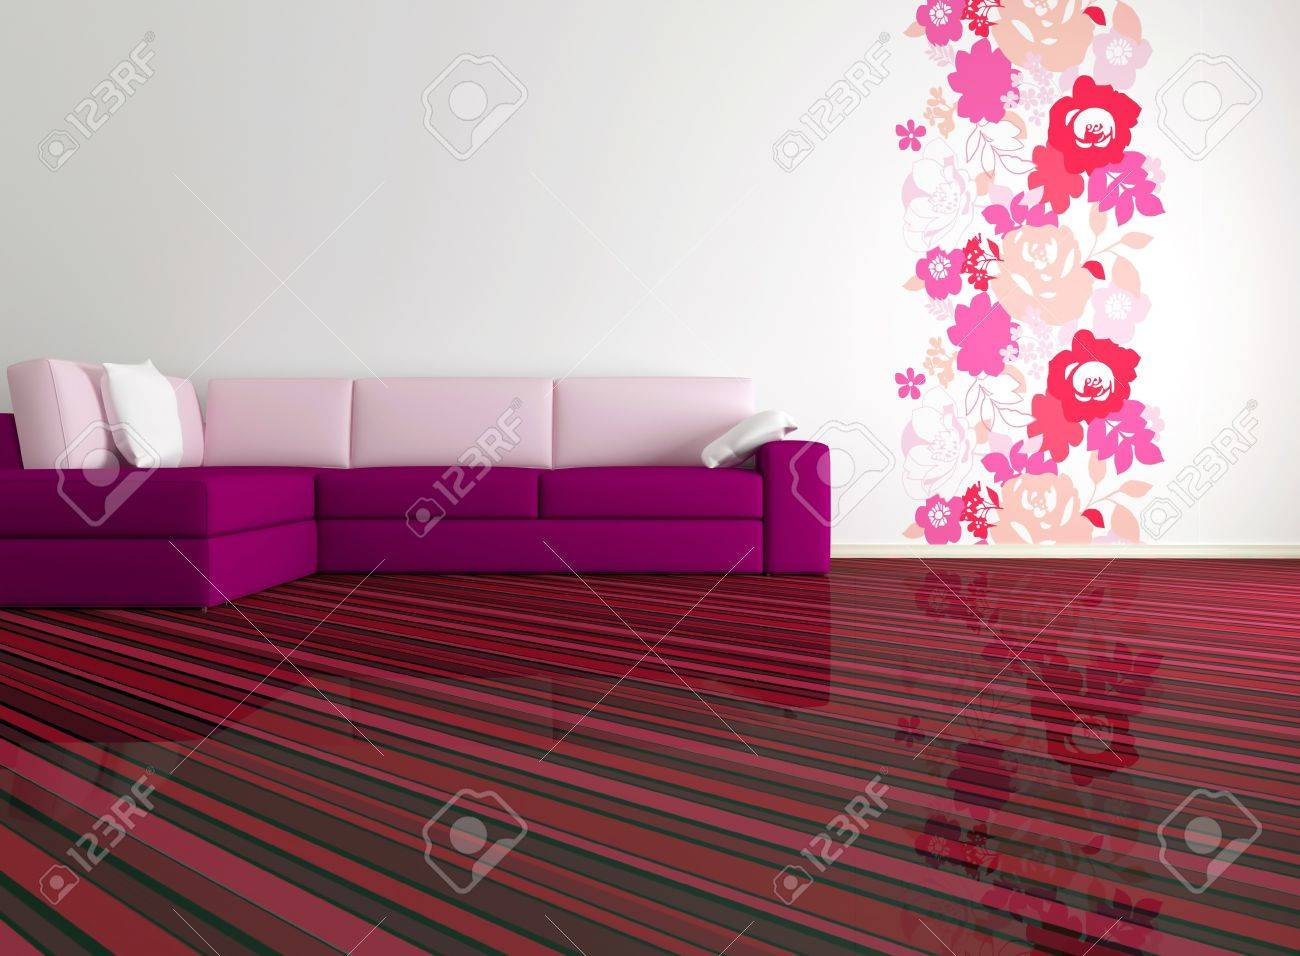 Bright Interior Design Of Modern Living Room With Big Pink Sofa